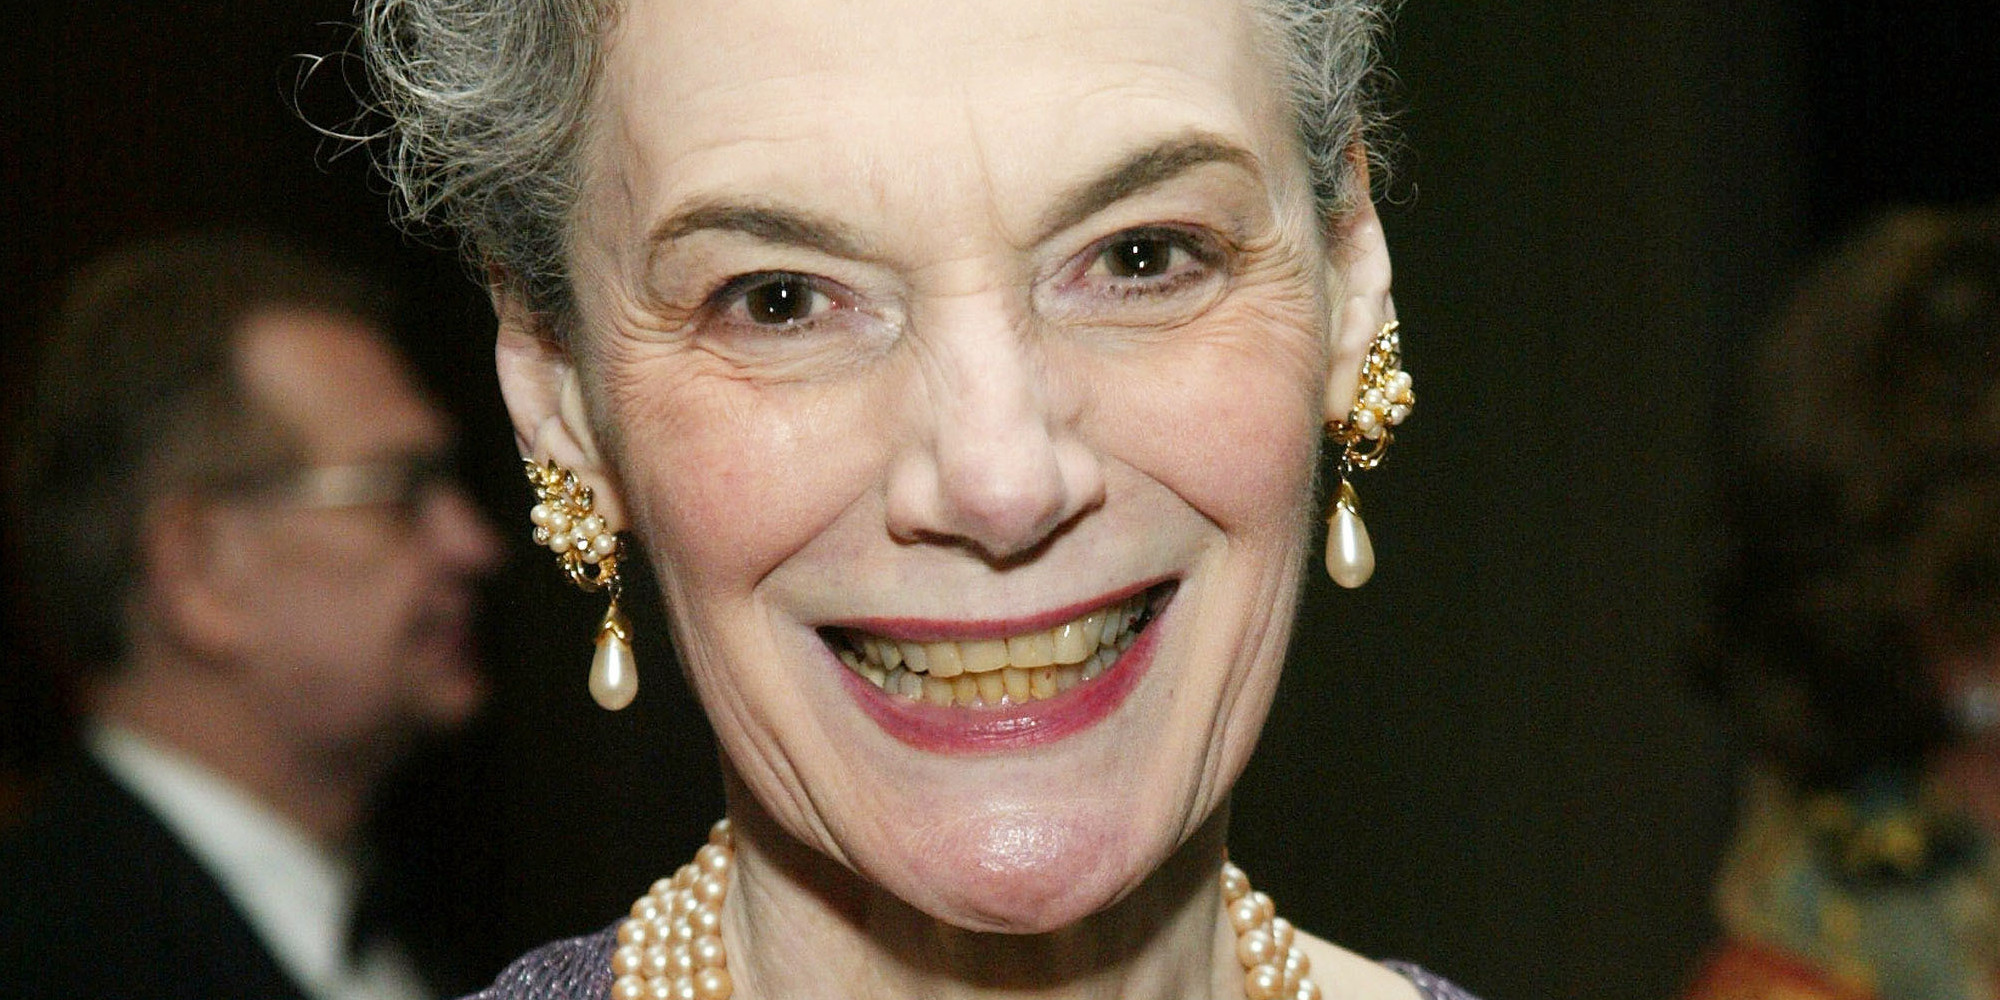 marian seldes photosmarian seldes movies, marian seldes imdb, marian seldes home alone 3, marian seldes actress, marian seldes young, marian seldes net worth, marian seldes death, marian seldes grave, marian seldes cause of death, marian seldes home alone 2, marian seldes age, marian seldes wikipedia, мэриэн селдес, marian seldes obituary, marian seldes quotes, marian seldes ibdb, marian seldes health, marian seldes angela lansbury, marian seldes photos, marian seldes interview